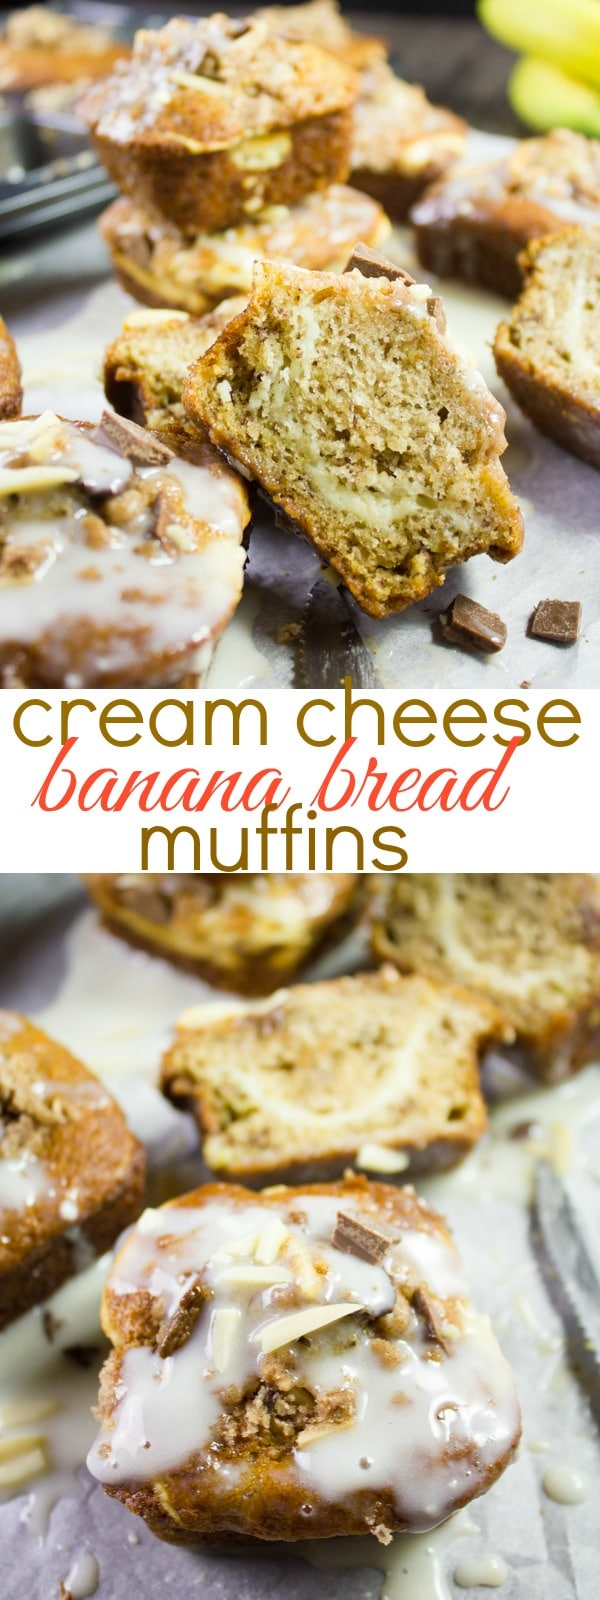 What could be better than a batch of oven-warm banana bread muffins? Maybe a batch of banana bread muffins with a rich and tangy cream cheese swirl and icing on top? #bananabreadmuffins, #creamcheeseswirl